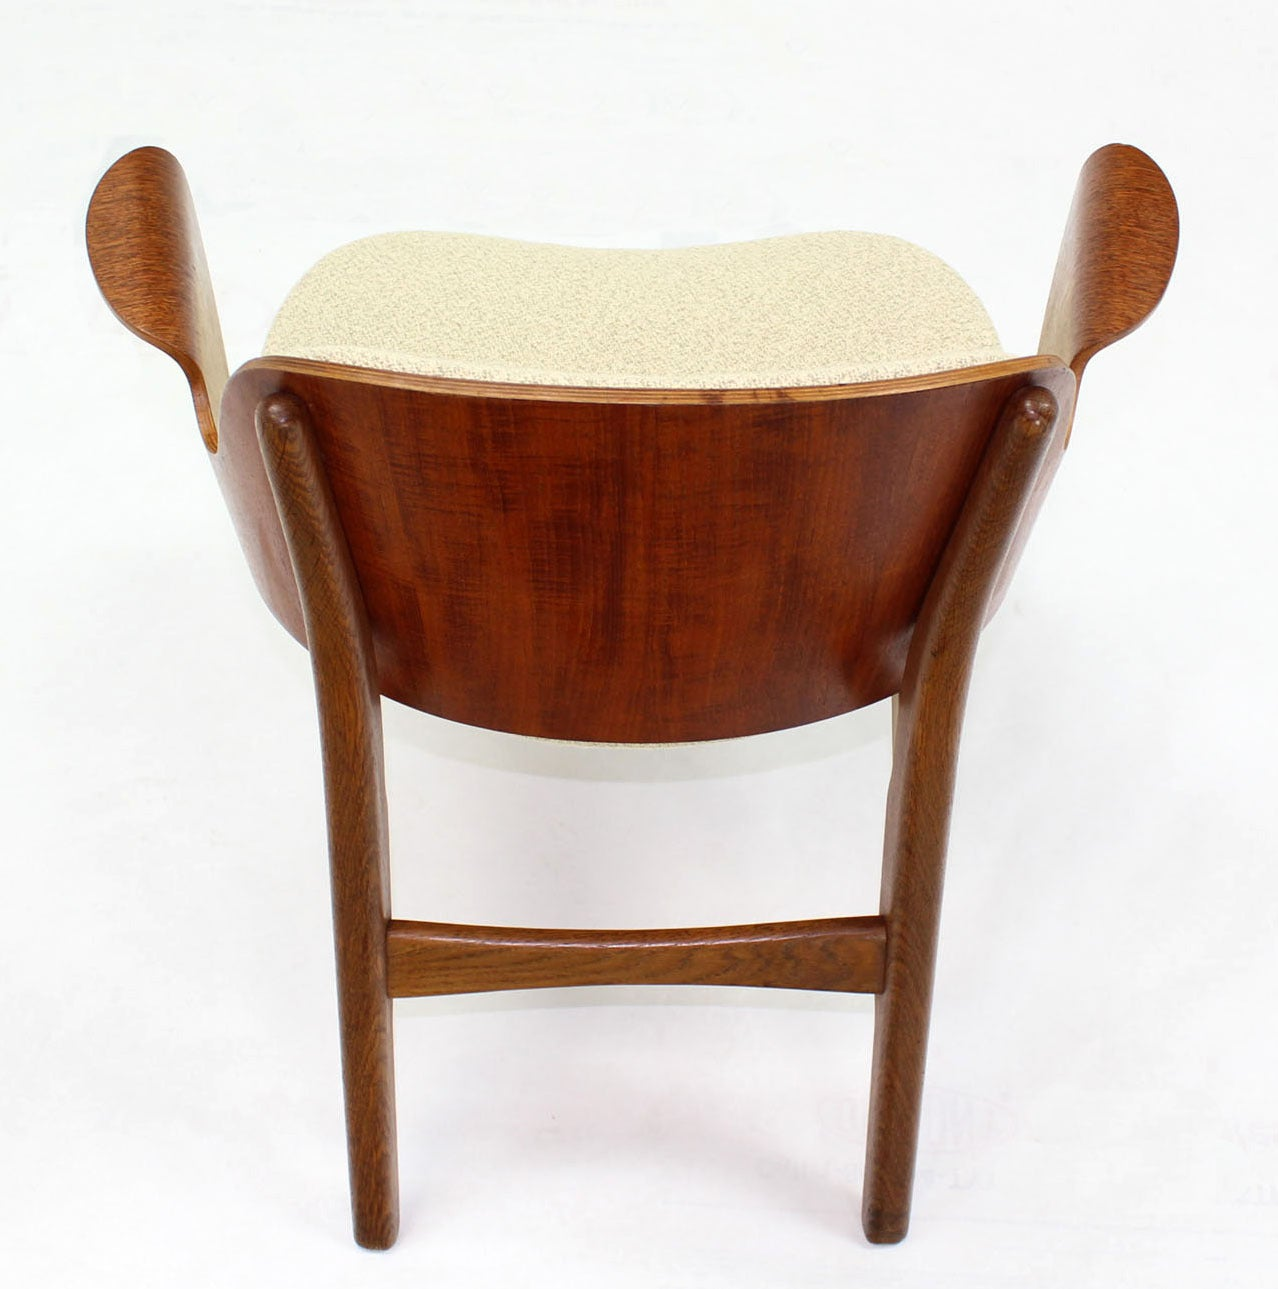 20th Century Mid-Century Modern Molded Plywood Barrel Back Armchair New Upholstery. For Sale